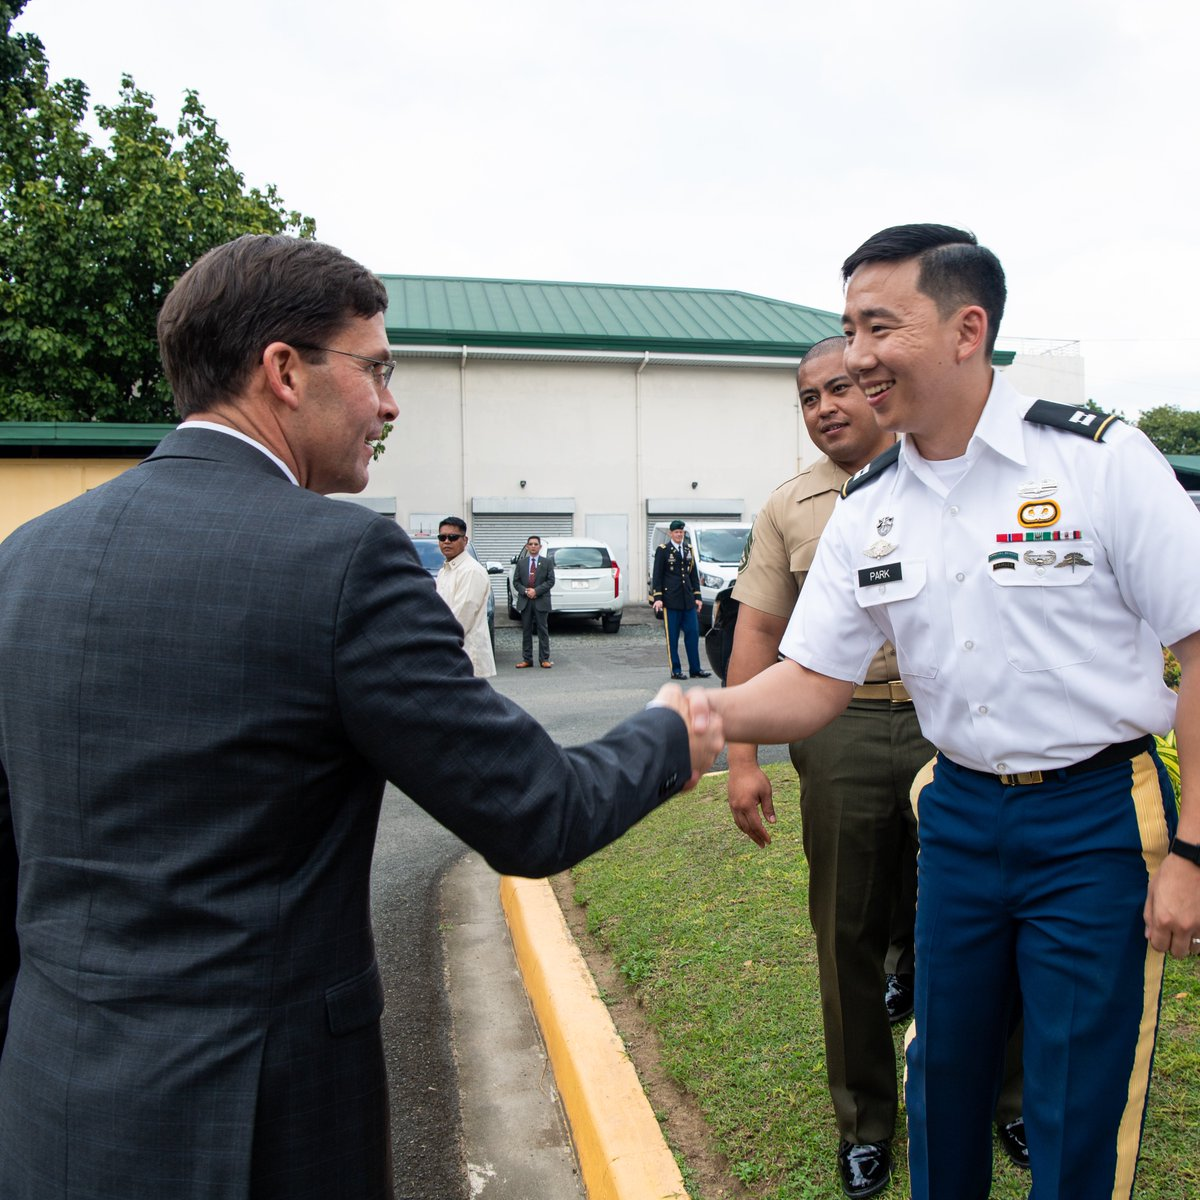 Enjoyed meeting with our military members serving in the Philippines! It was my distinct honor to spend time with you yesterday. I am grateful for your contributions which strengthen the alliance and your service to our Nation.